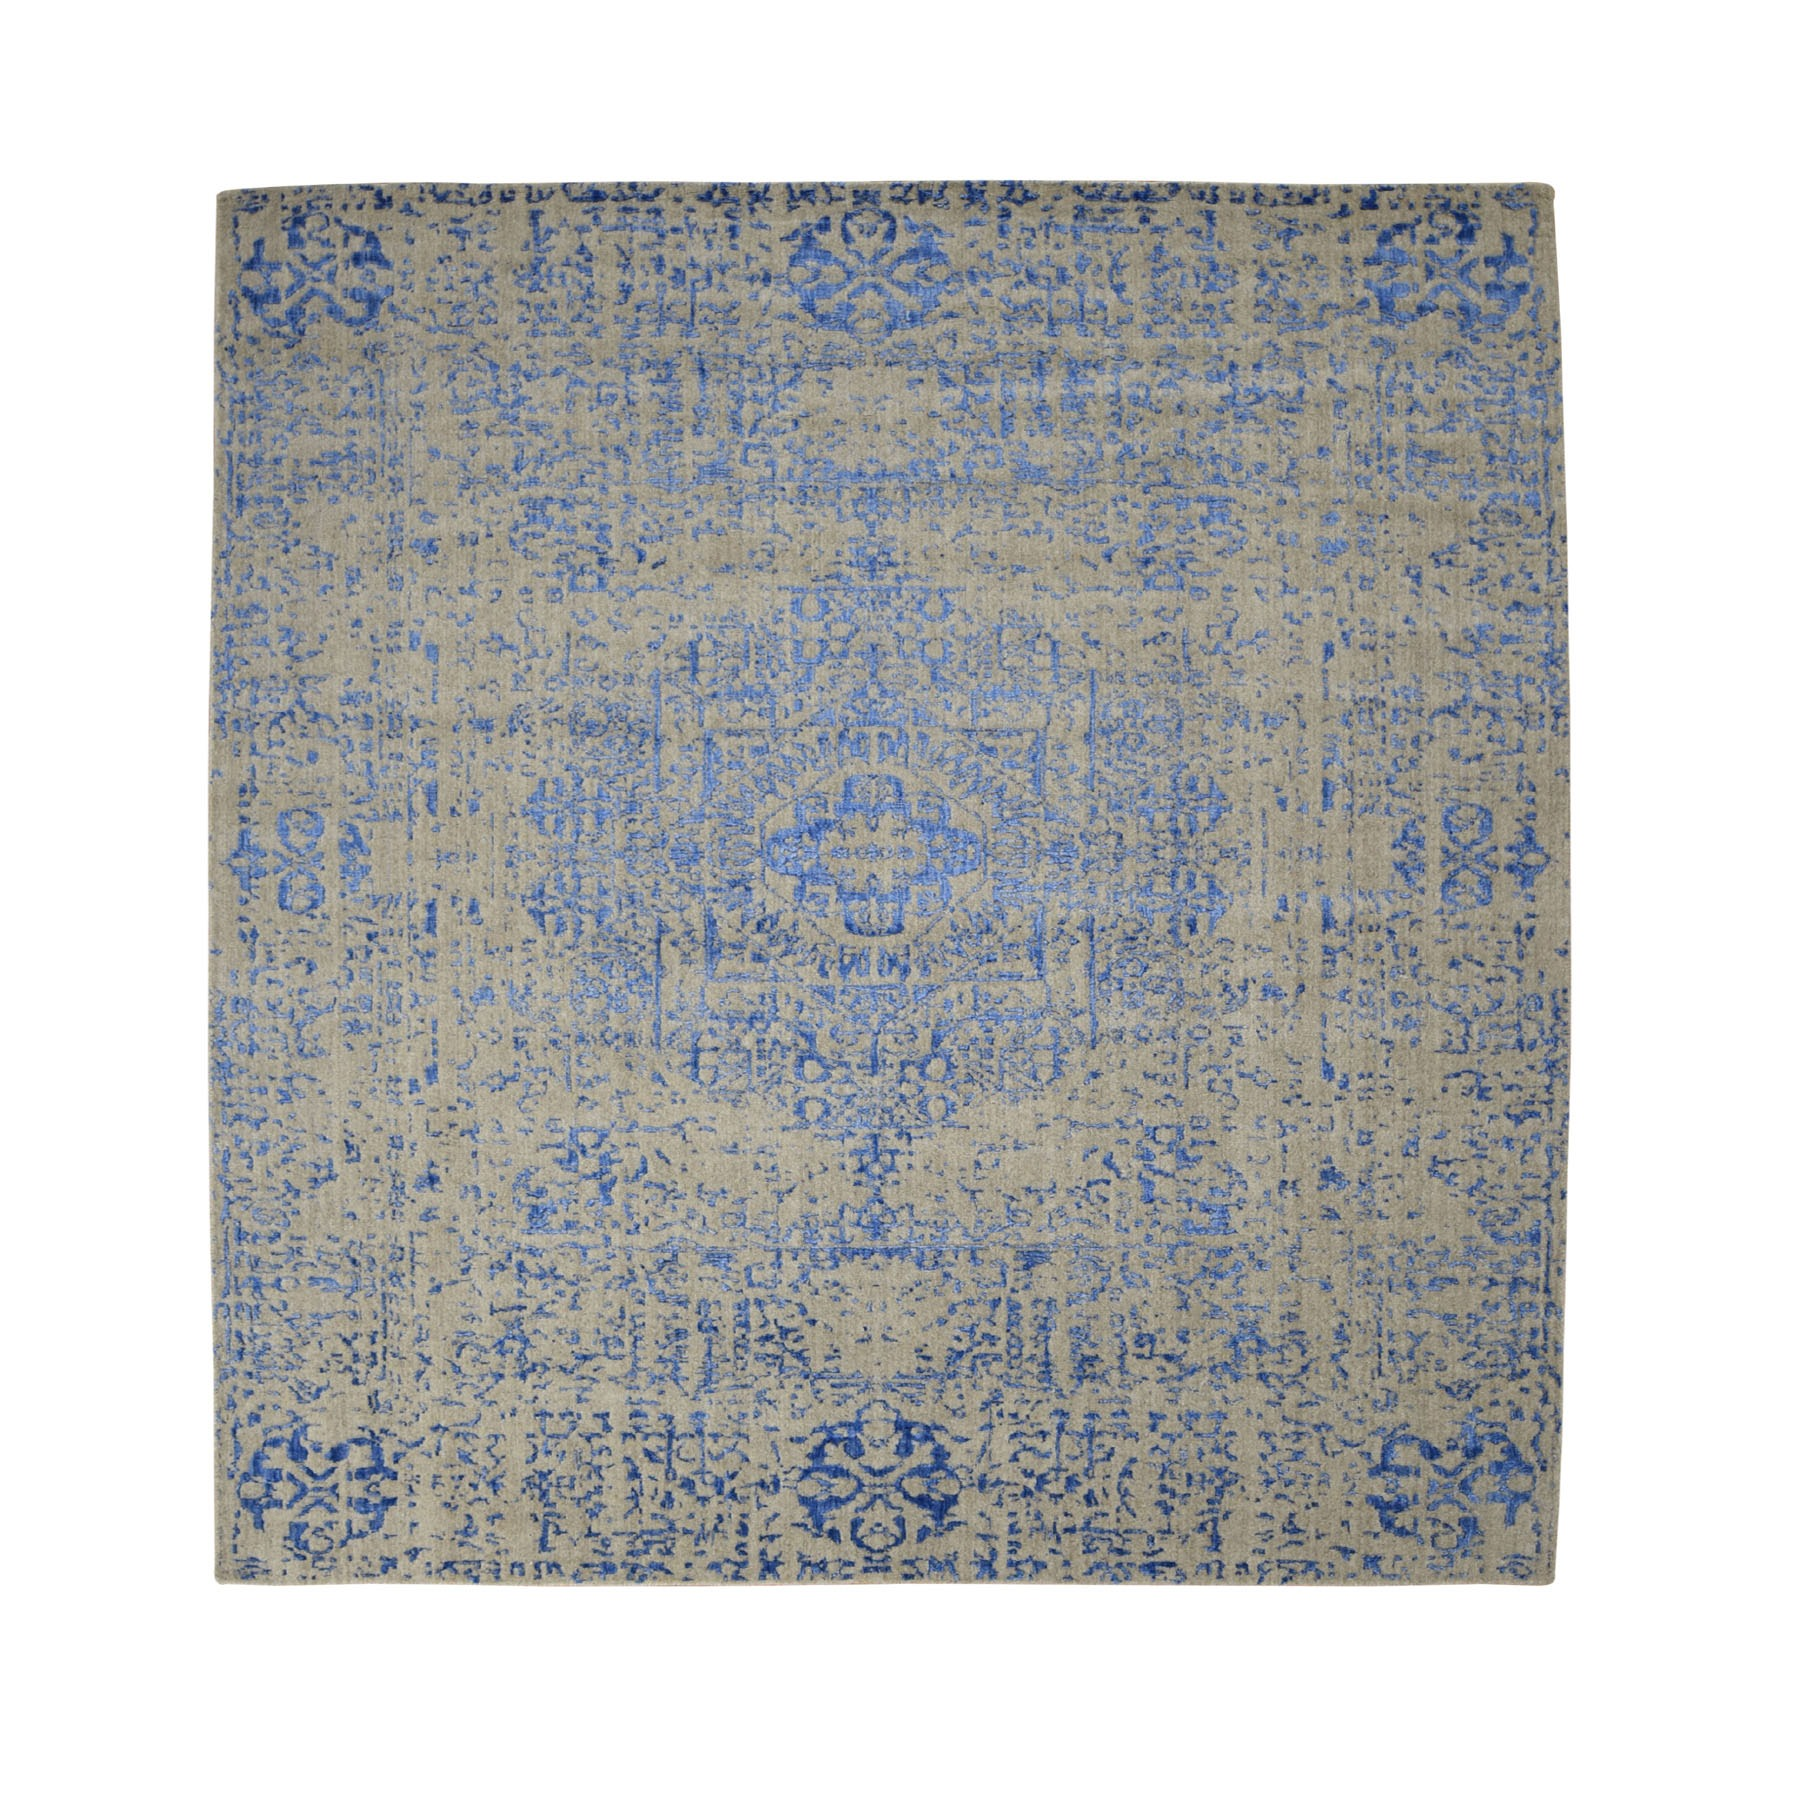 hand-loomed rugs LUV441126